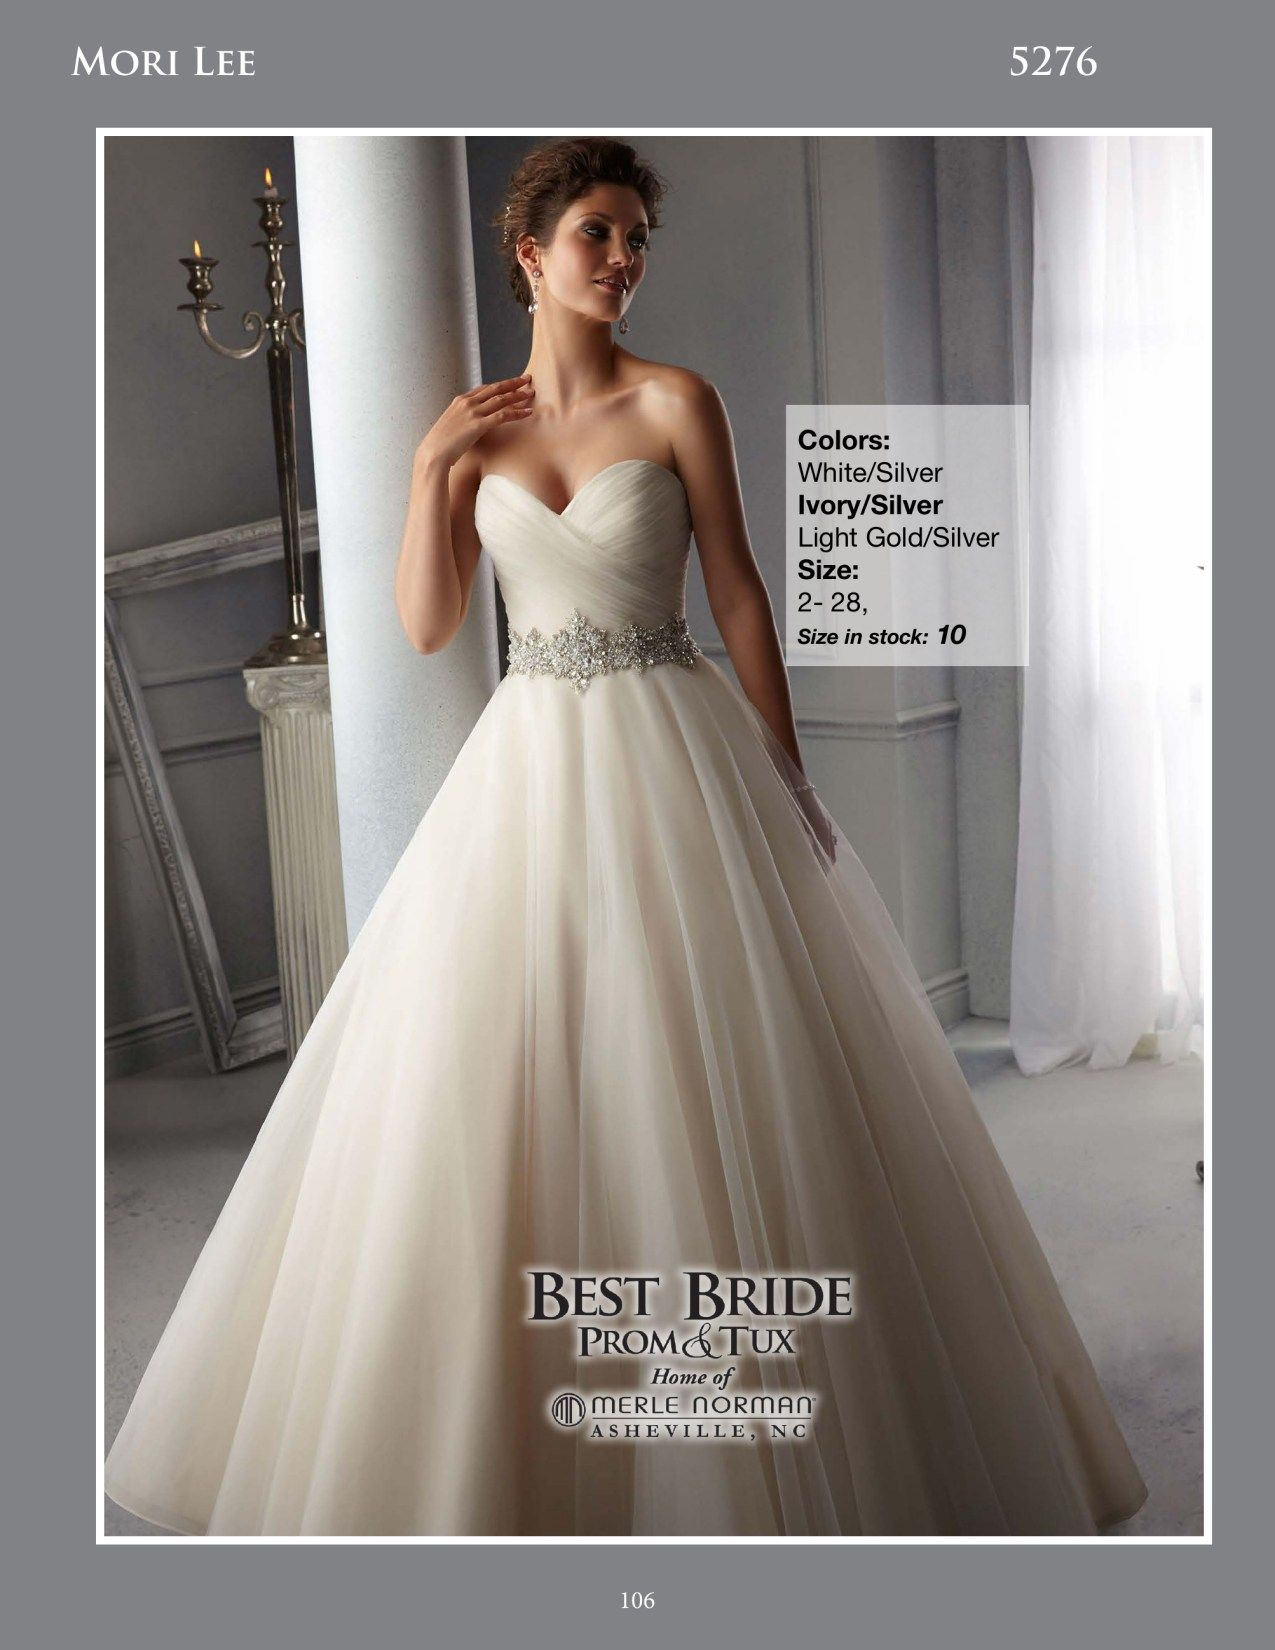 This cinderella style tulle bridal dress is breathtakingly beautiful